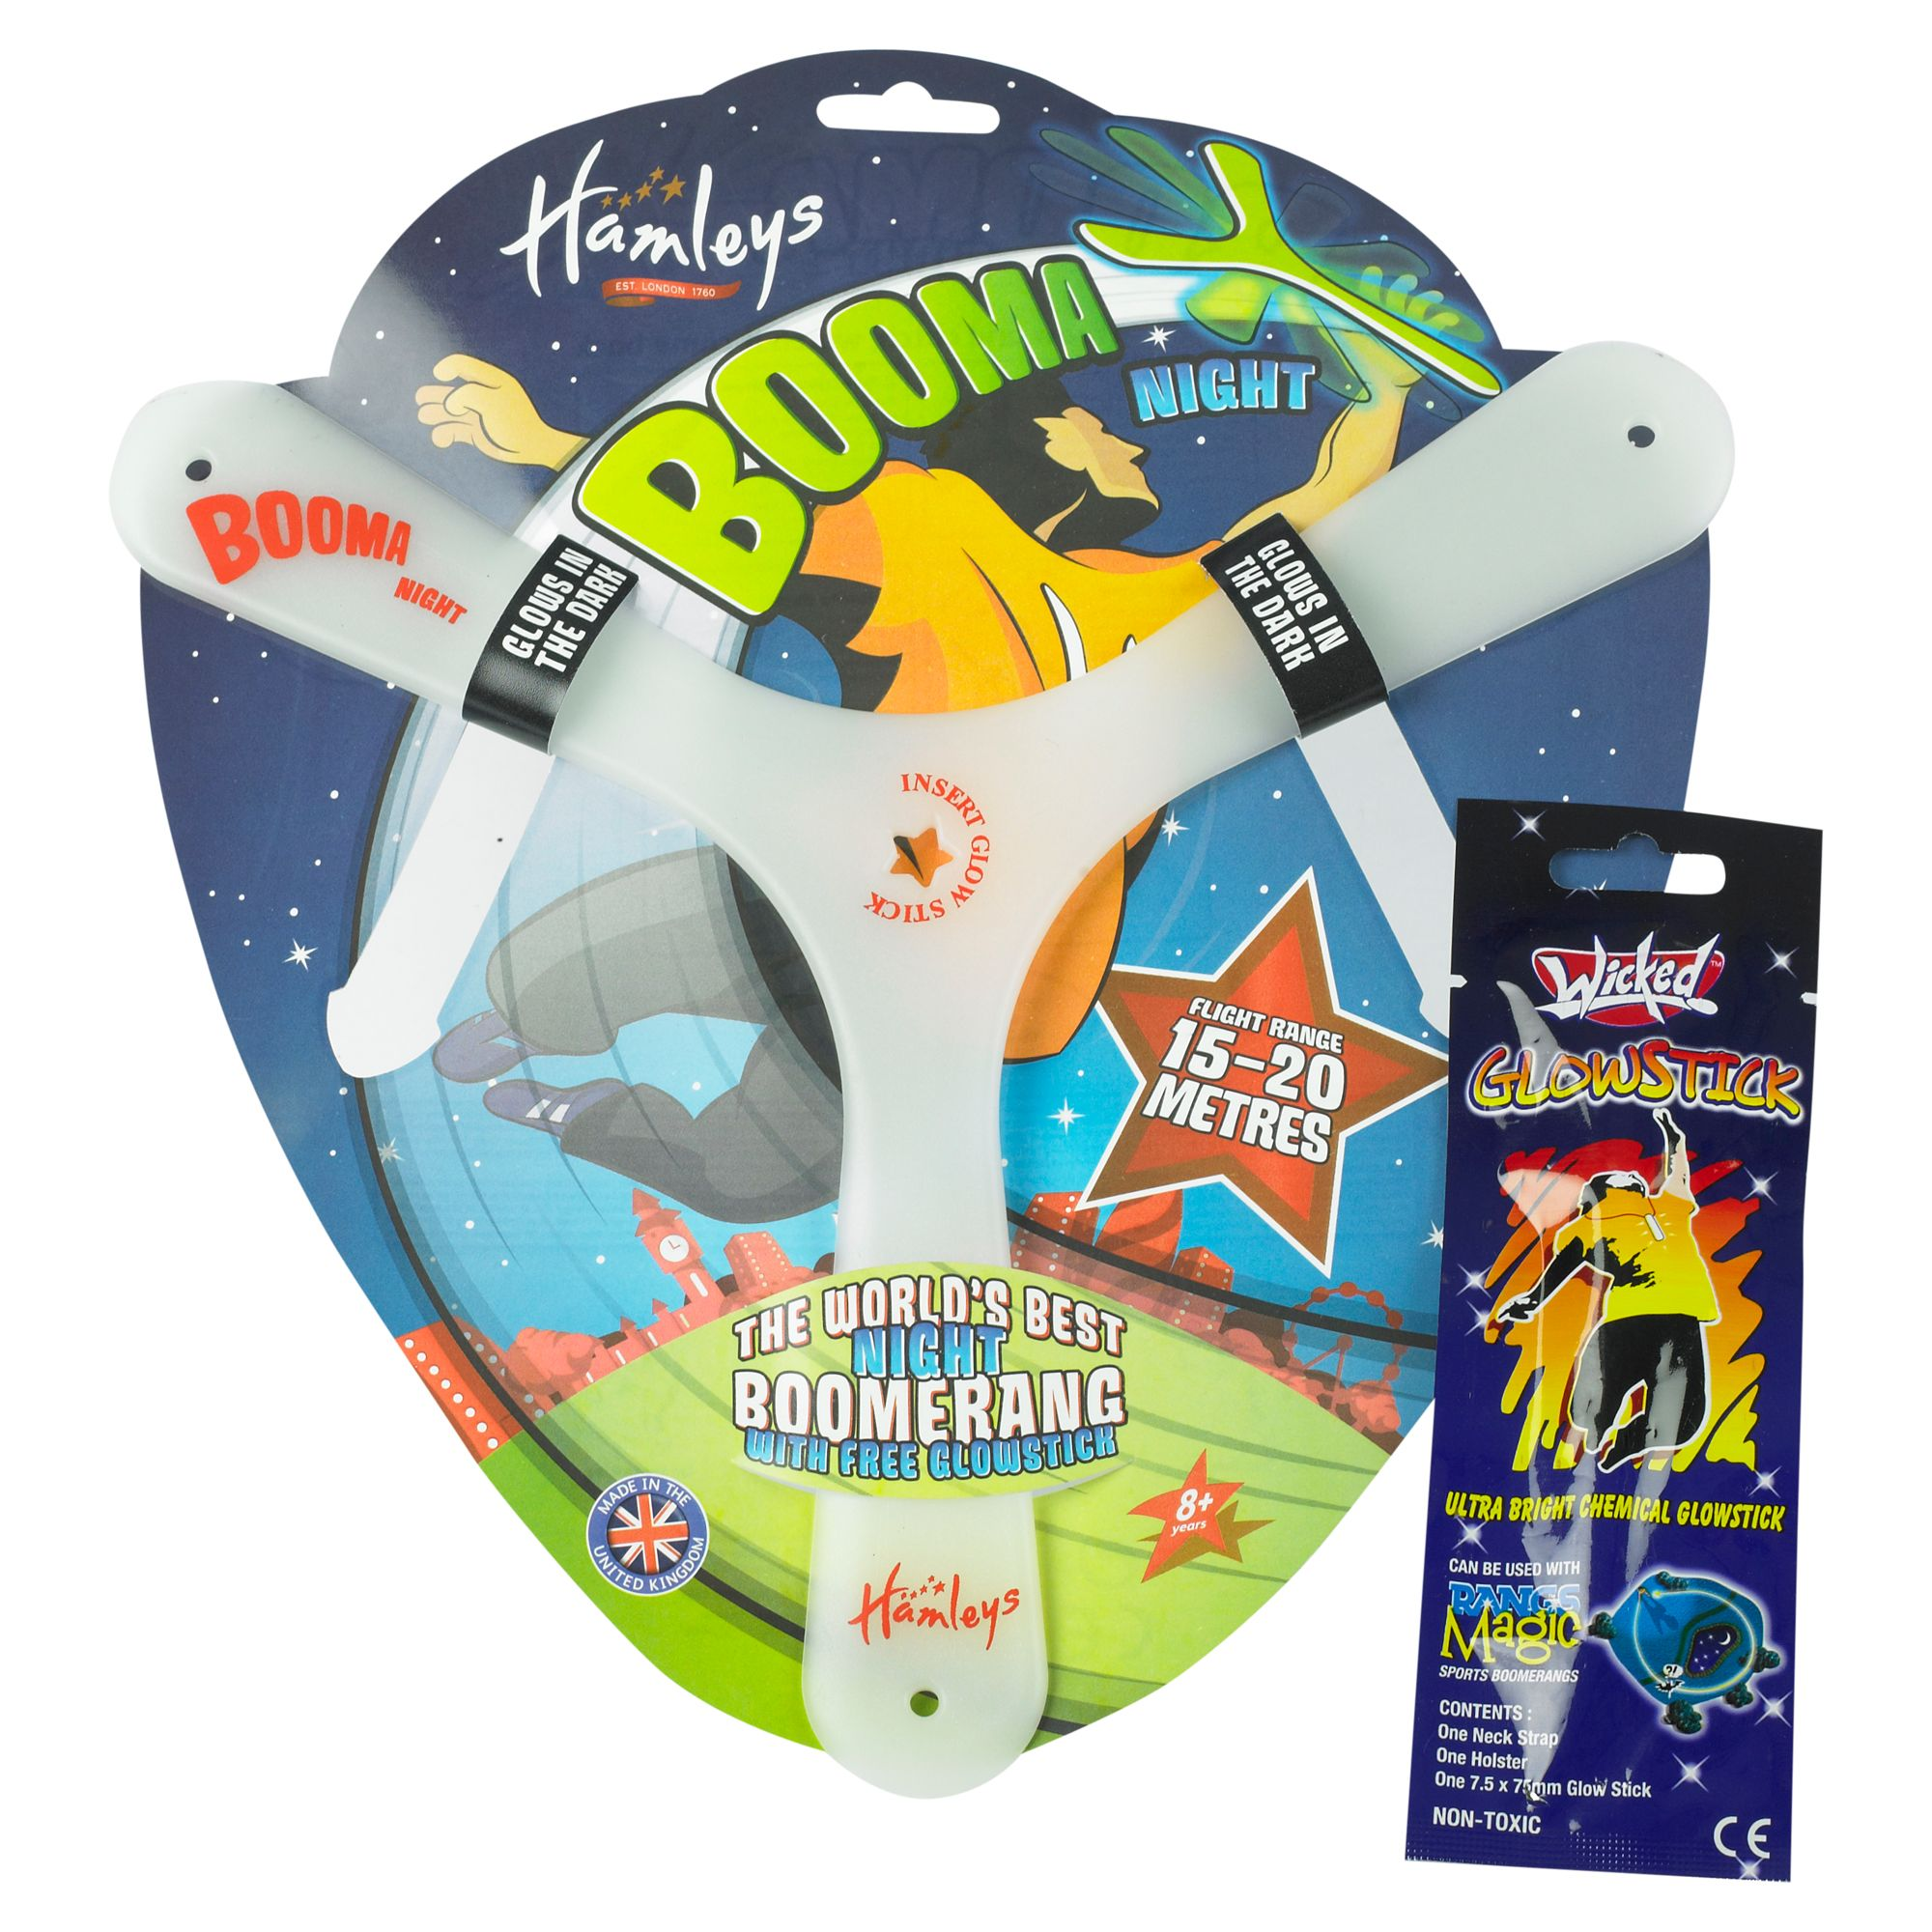 Hamleys Booma Night Boomerang